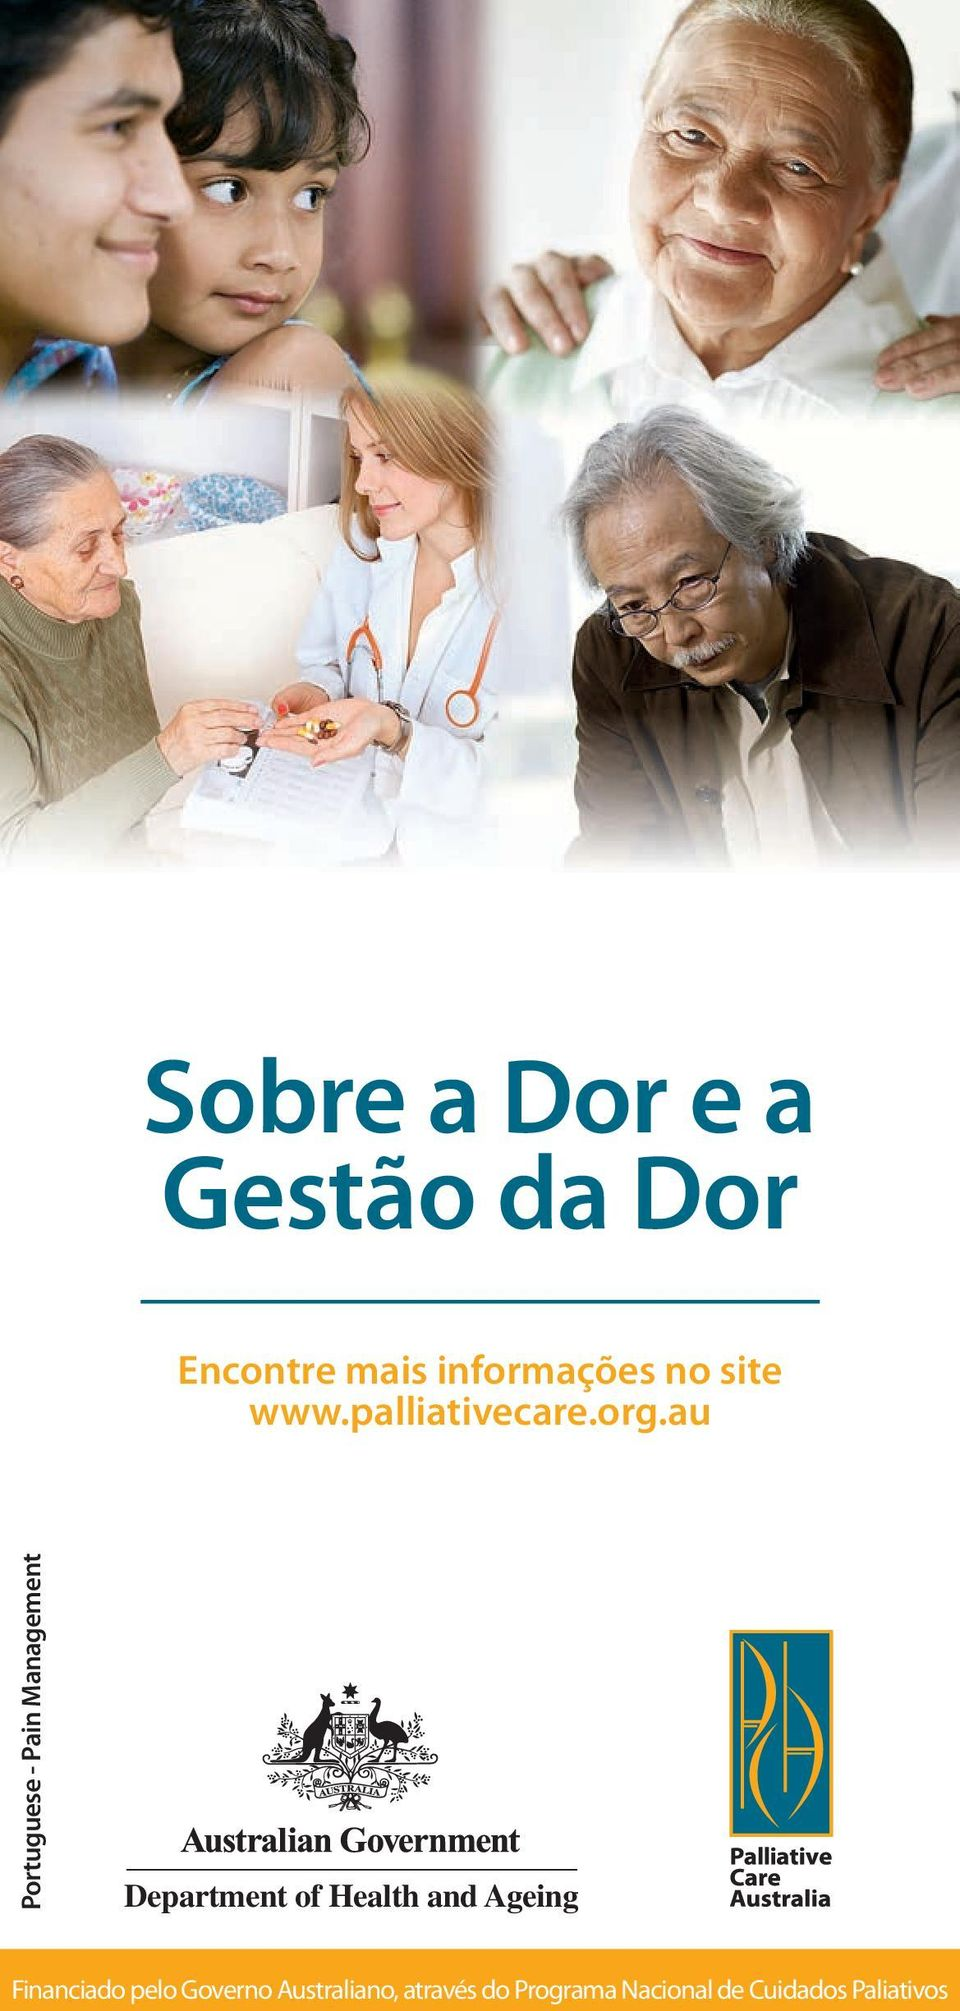 au Portuguese - Pain Management Department of Health and